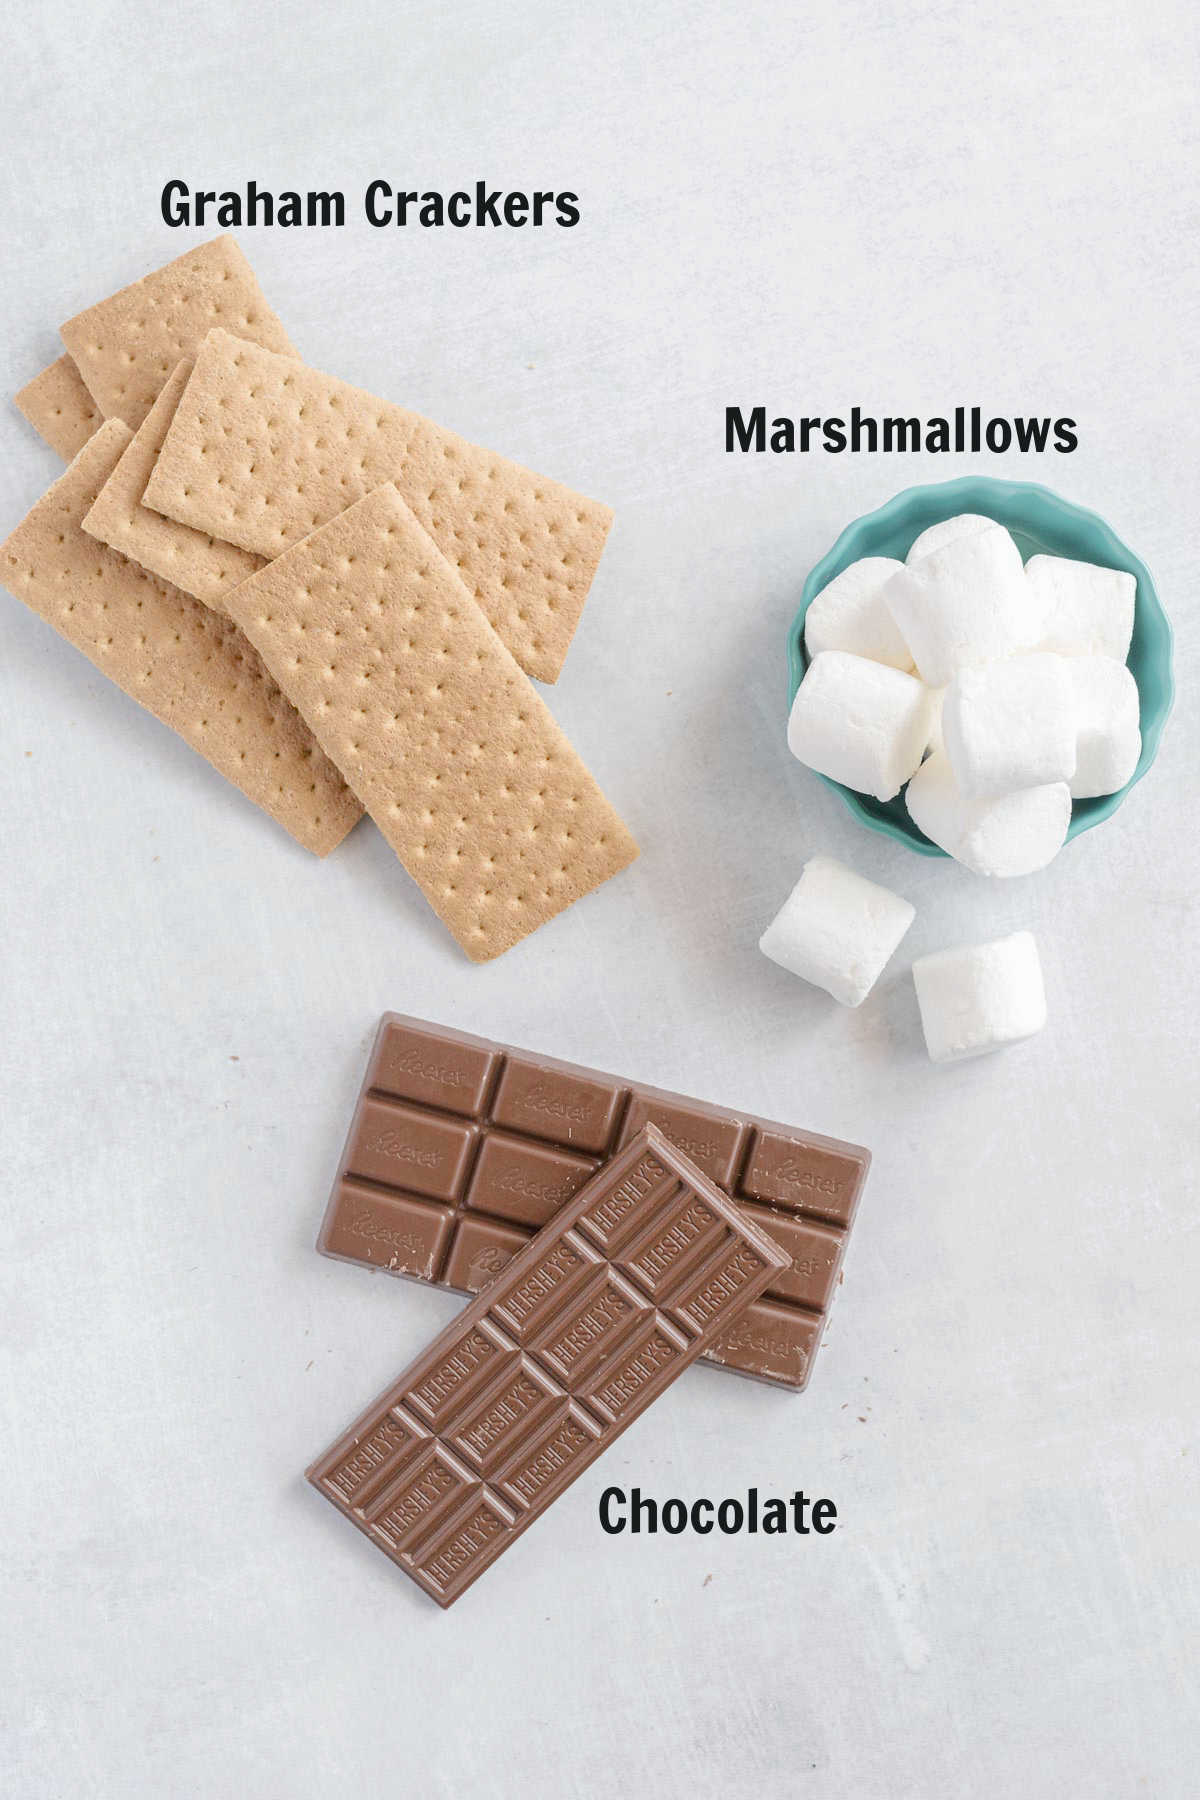 A stack of graham crackers, two chocolate bars and a bowl of large marshmallows.